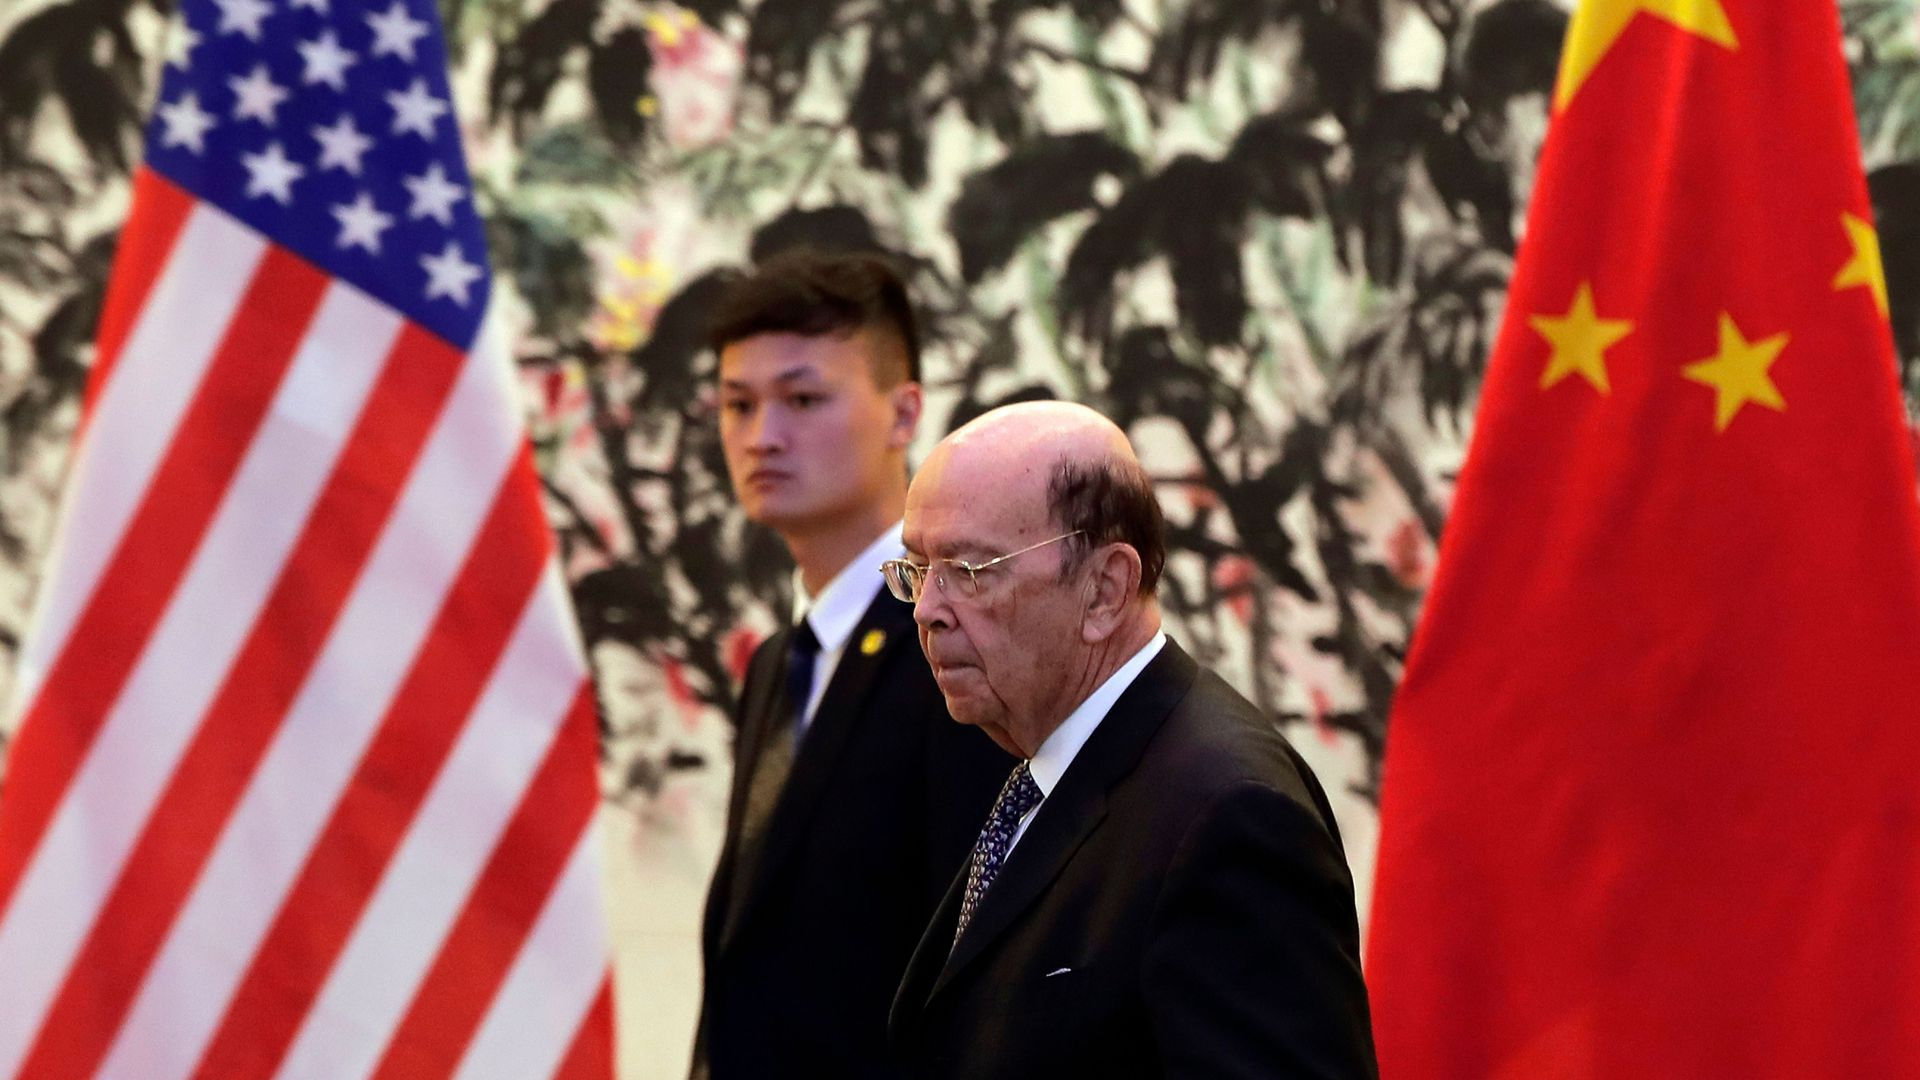 US Commerce Secretary Wilbur Ross arrives to the Diaoyutai State Guesthouse to attend a meeting with Chinese Vice Premier Liu He in Beijing on June 3, 2018.